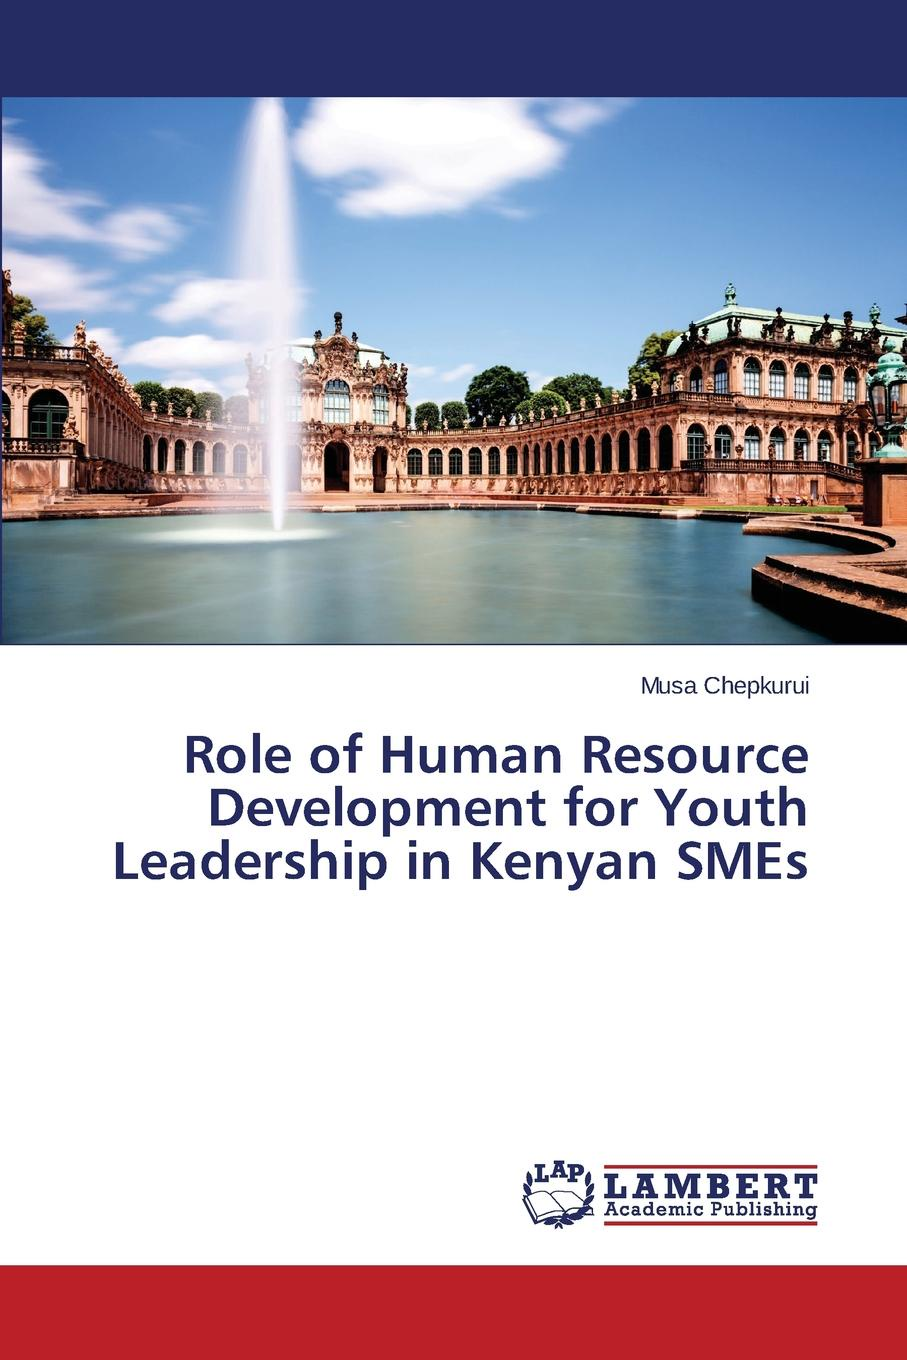 Chepkurui Musa Role of Human Resource Development for Youth Leadership in Kenyan SMEs nancy lieberman playbook for success a hall of famer s business tactics for teamwork and leadership